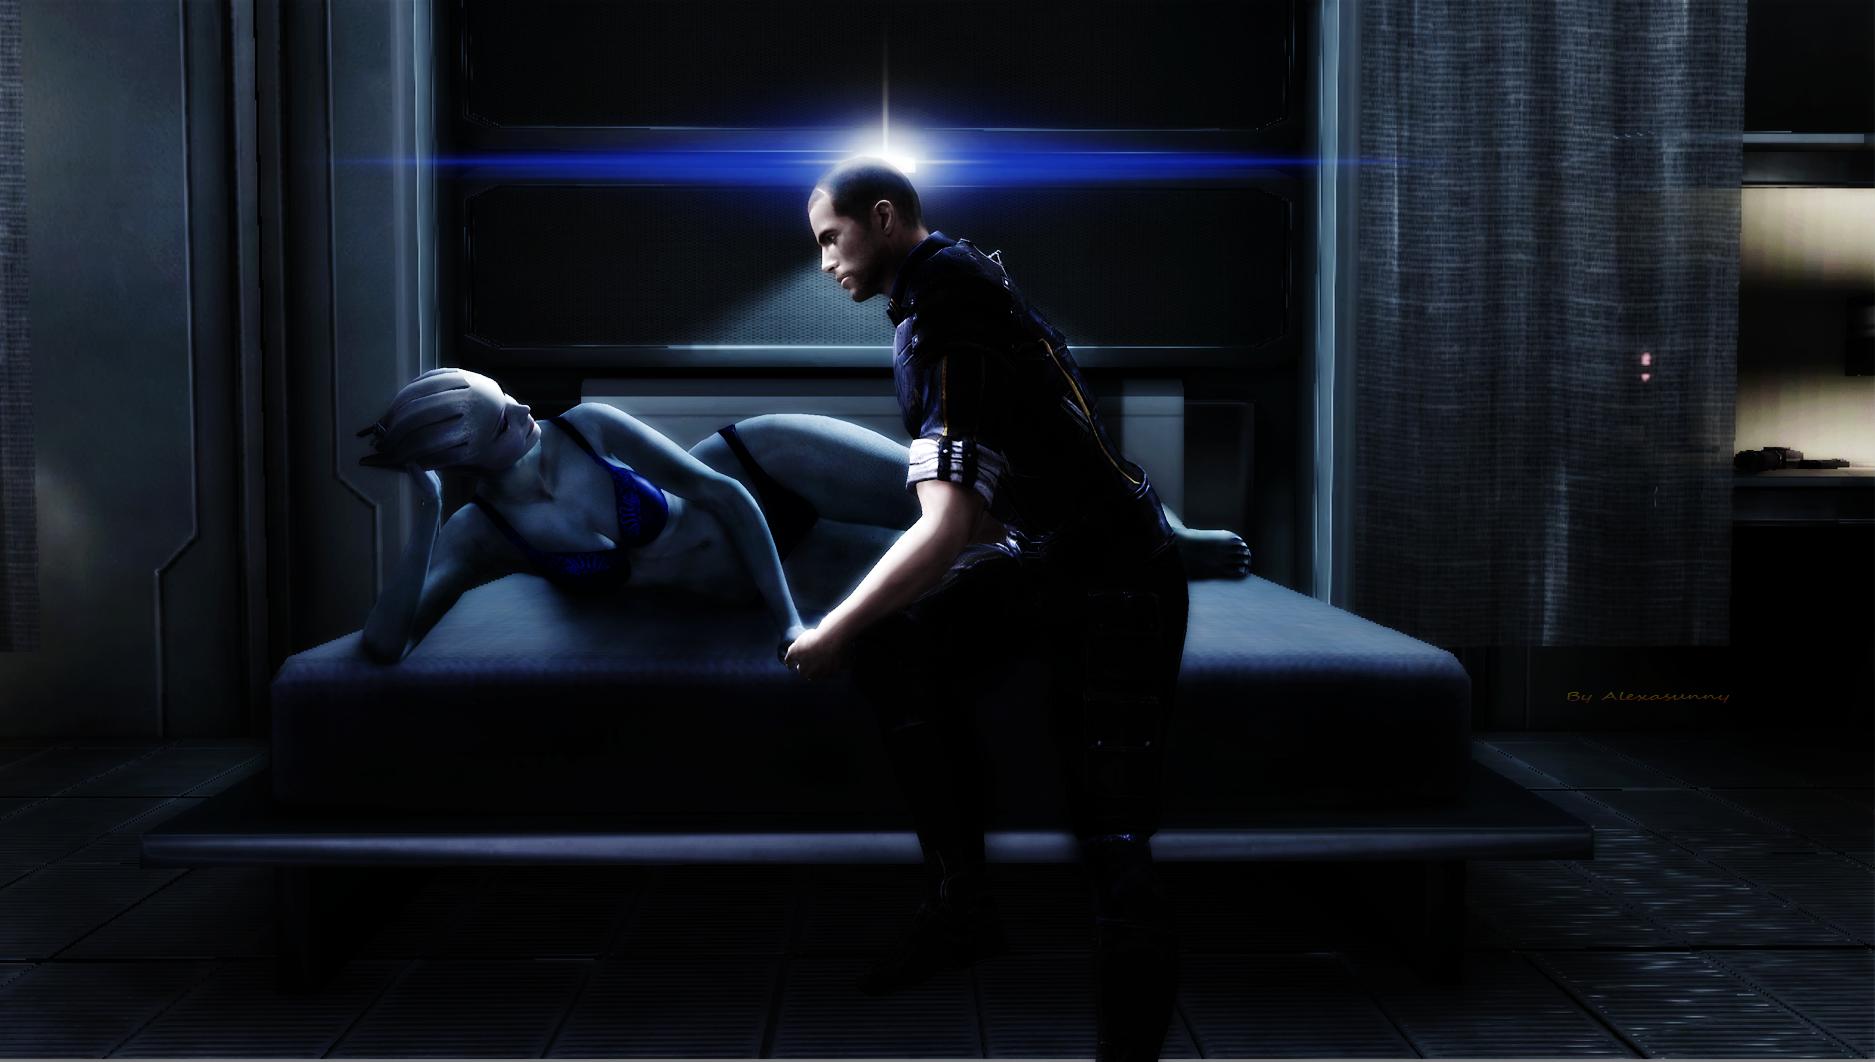 Liara and Shepard request by Alexasunny